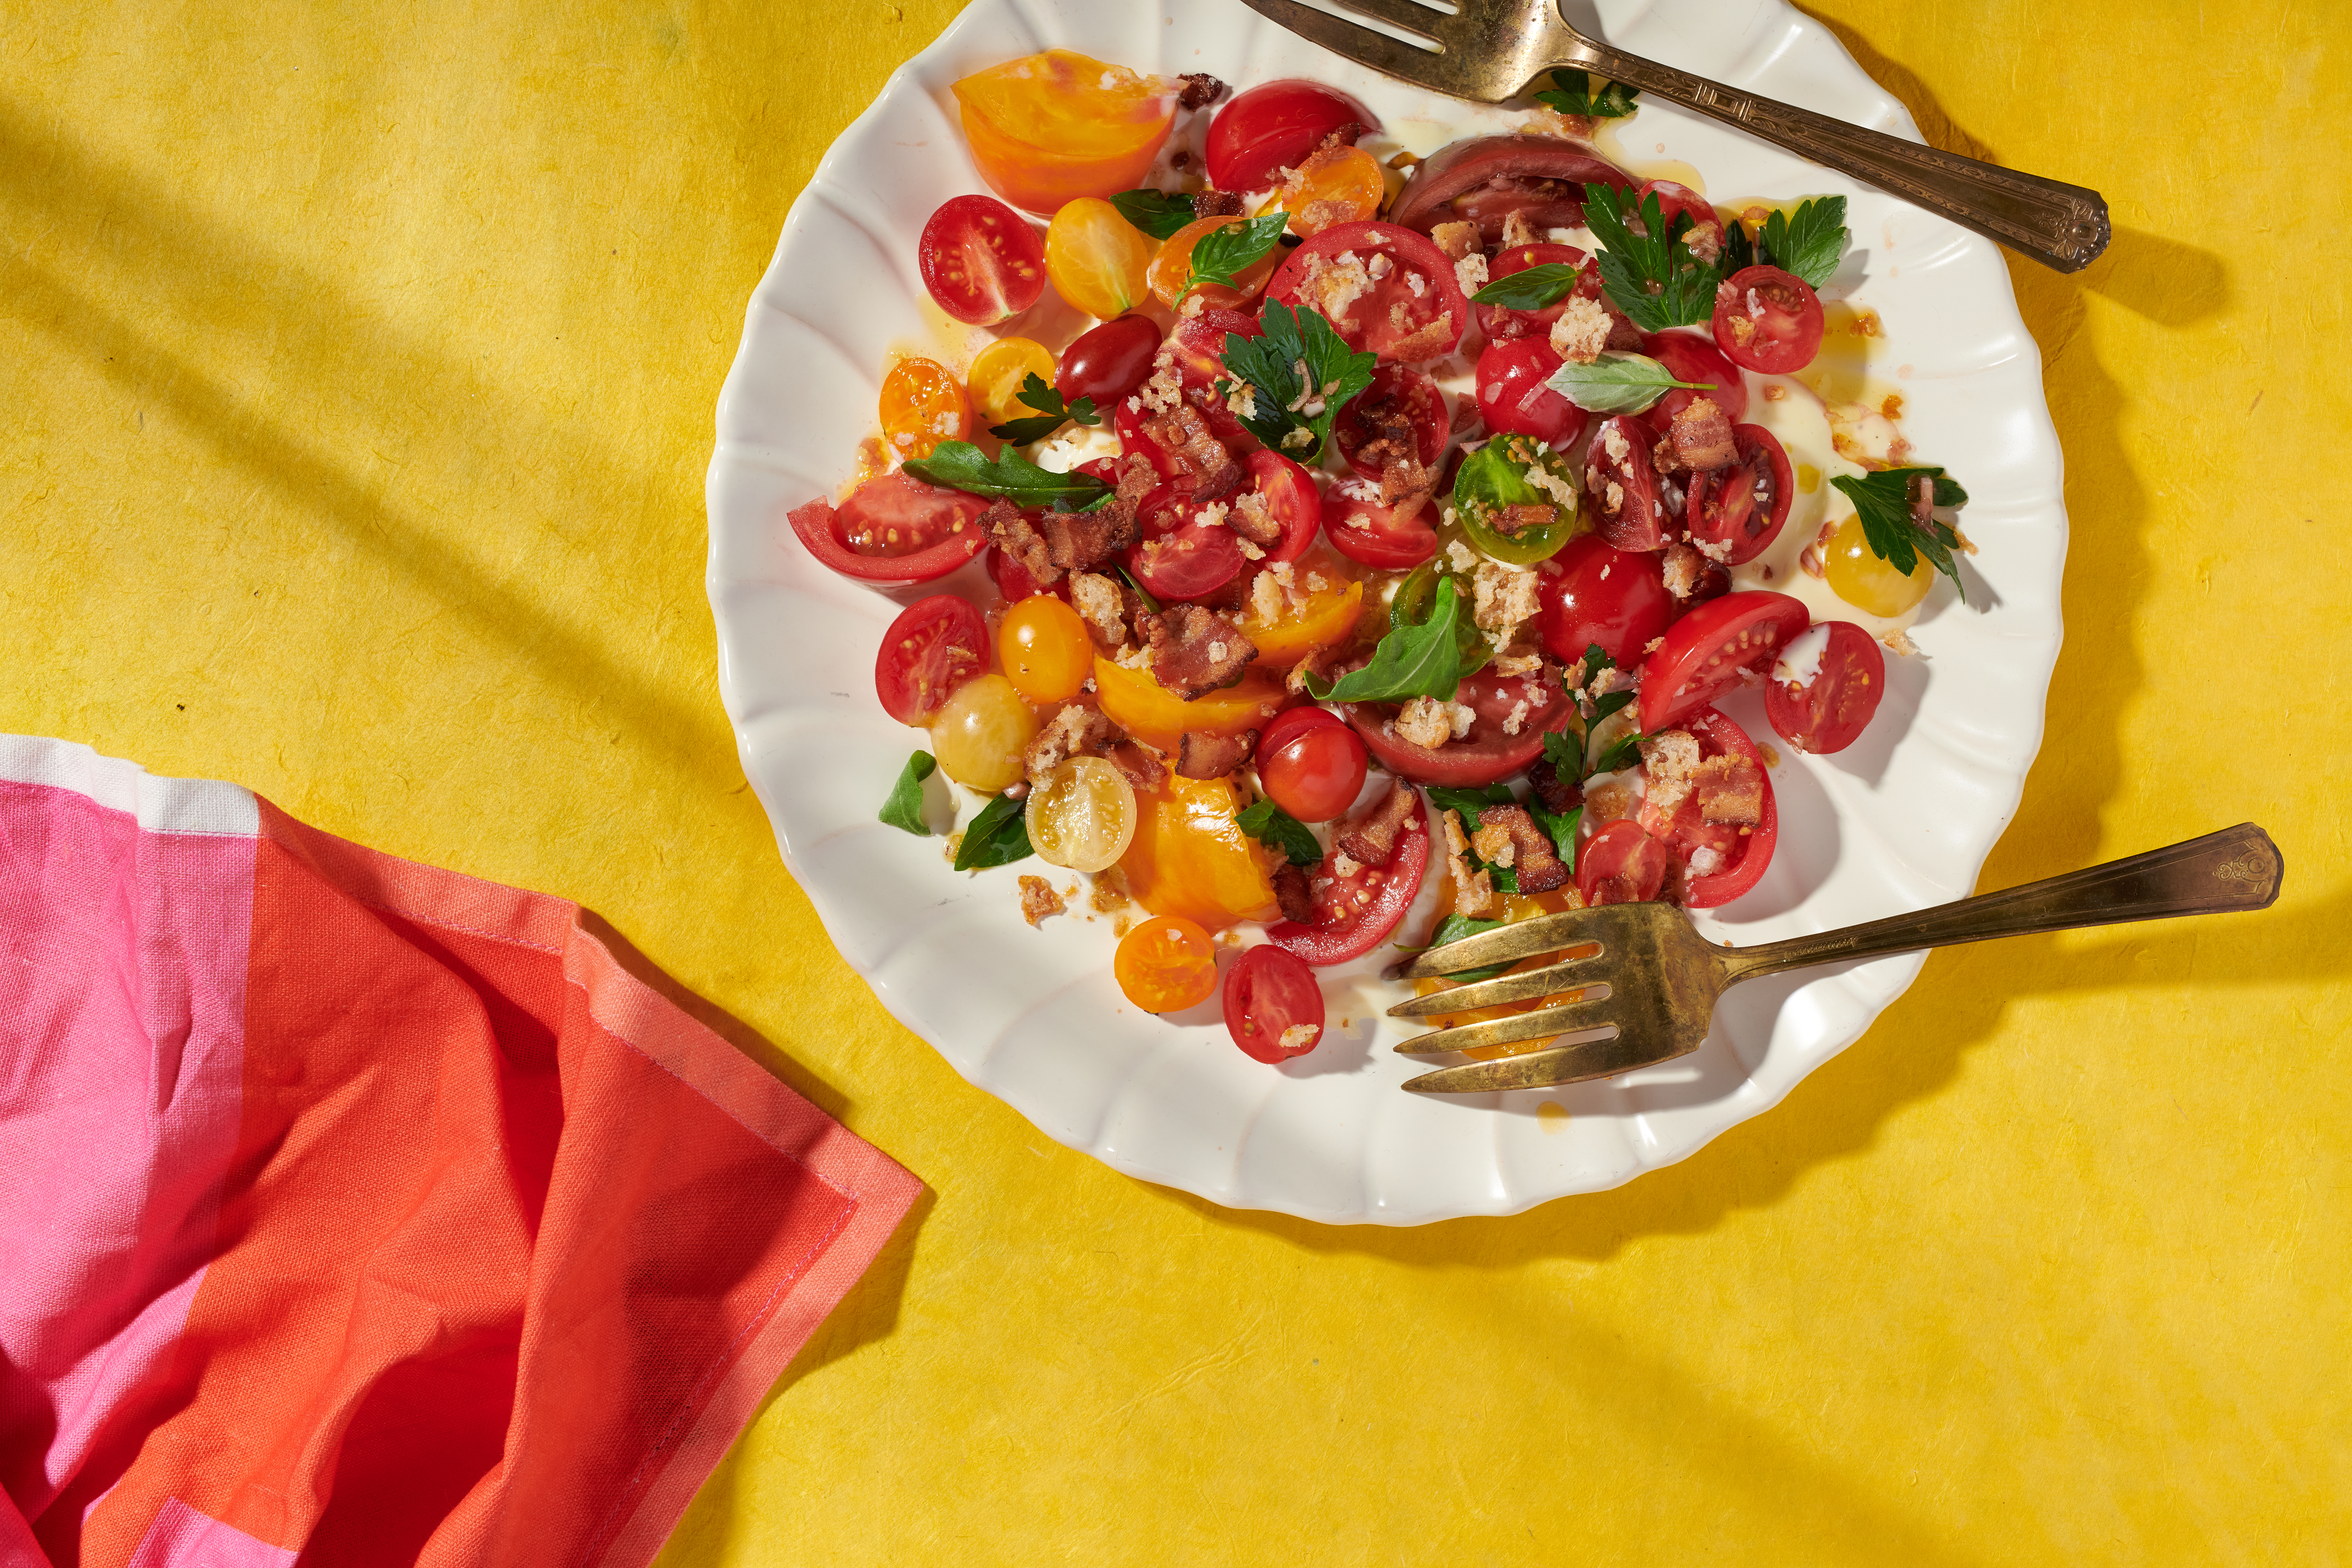 A BLT salad and two gold forks sit on a white plate. The plate is set on a bright-yellow table, with a hot-pink napkin unfolded next to it.